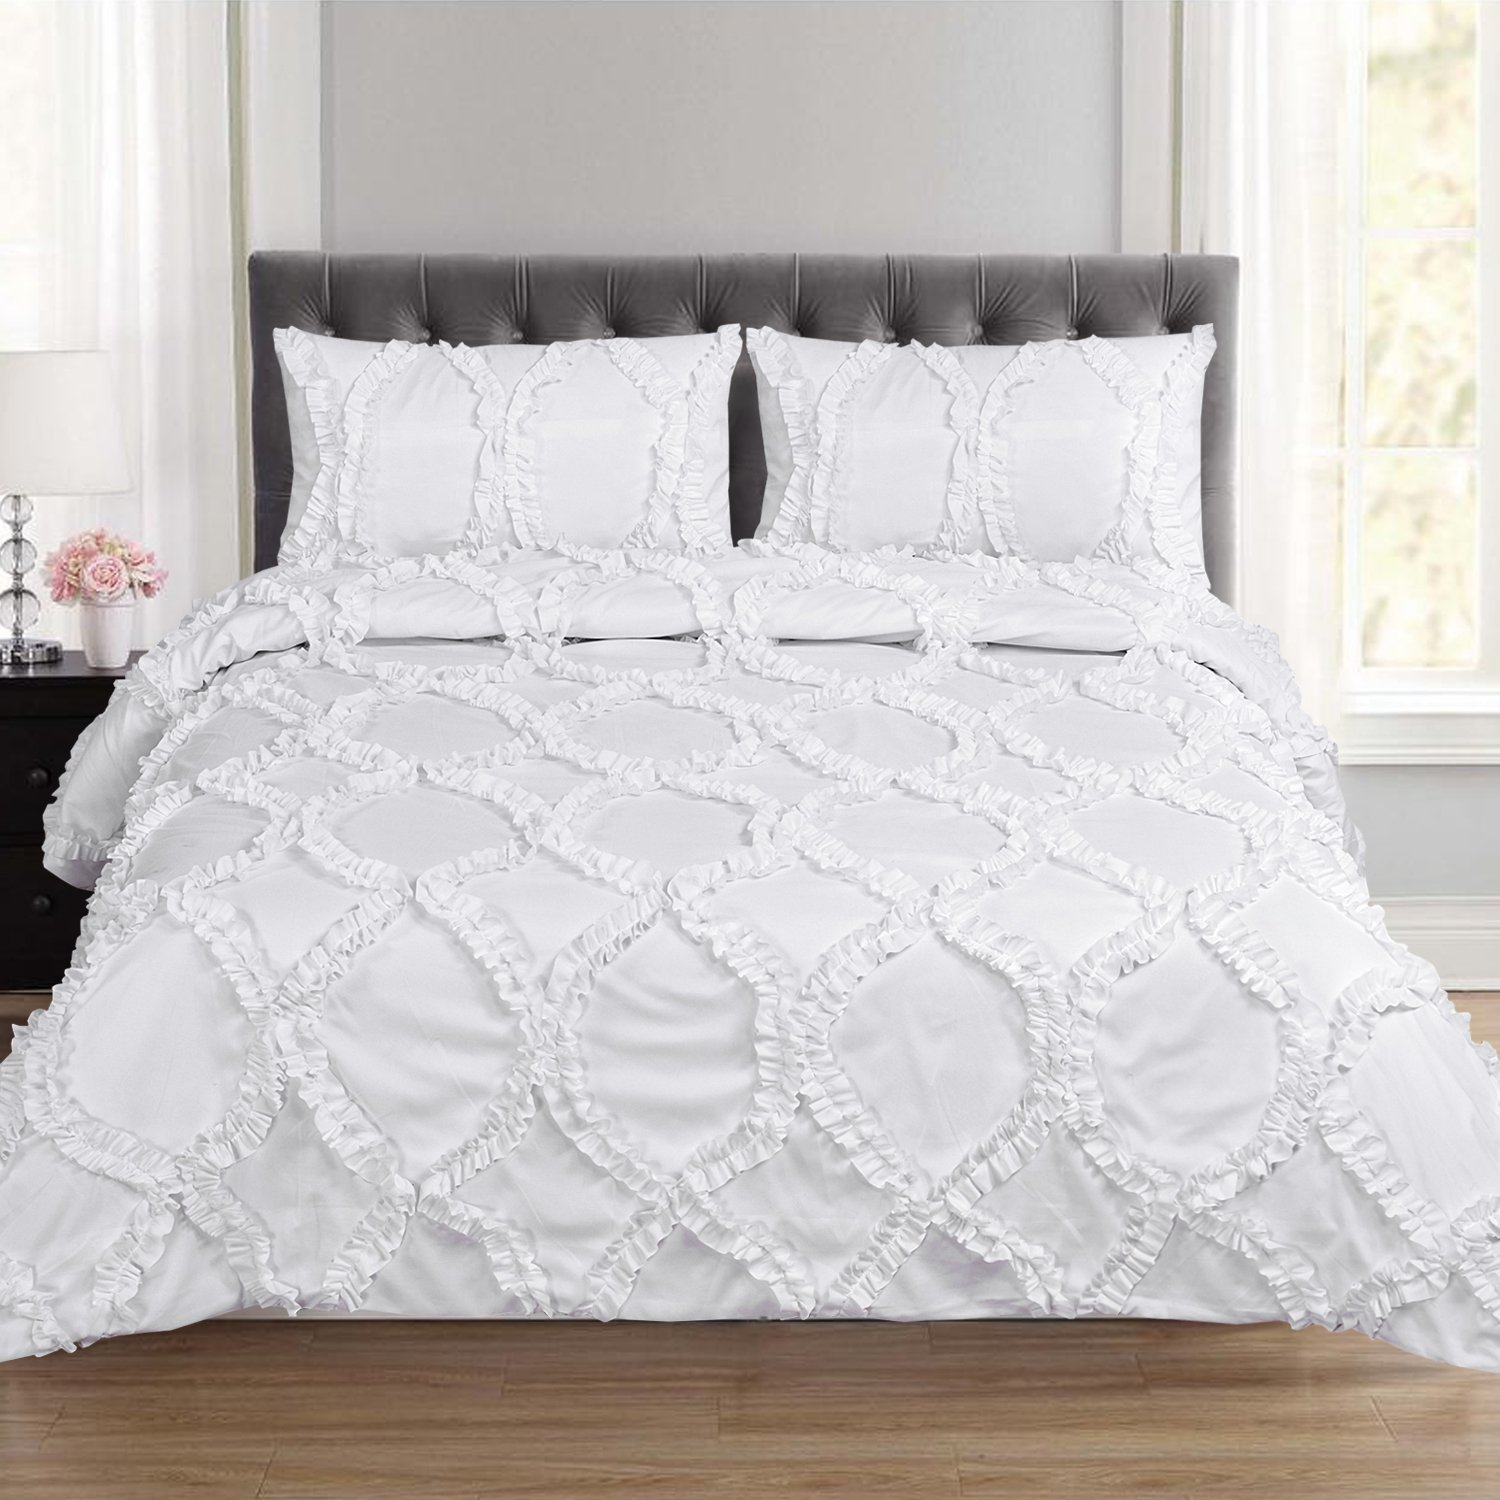 Sweet Home Collection FNCYDVT-TATI-KNG-WHT Tatiana Fancy Duvet Cover 3 Piece Set With Pillow Shams Unique Stylish Fashion Designs, King, White